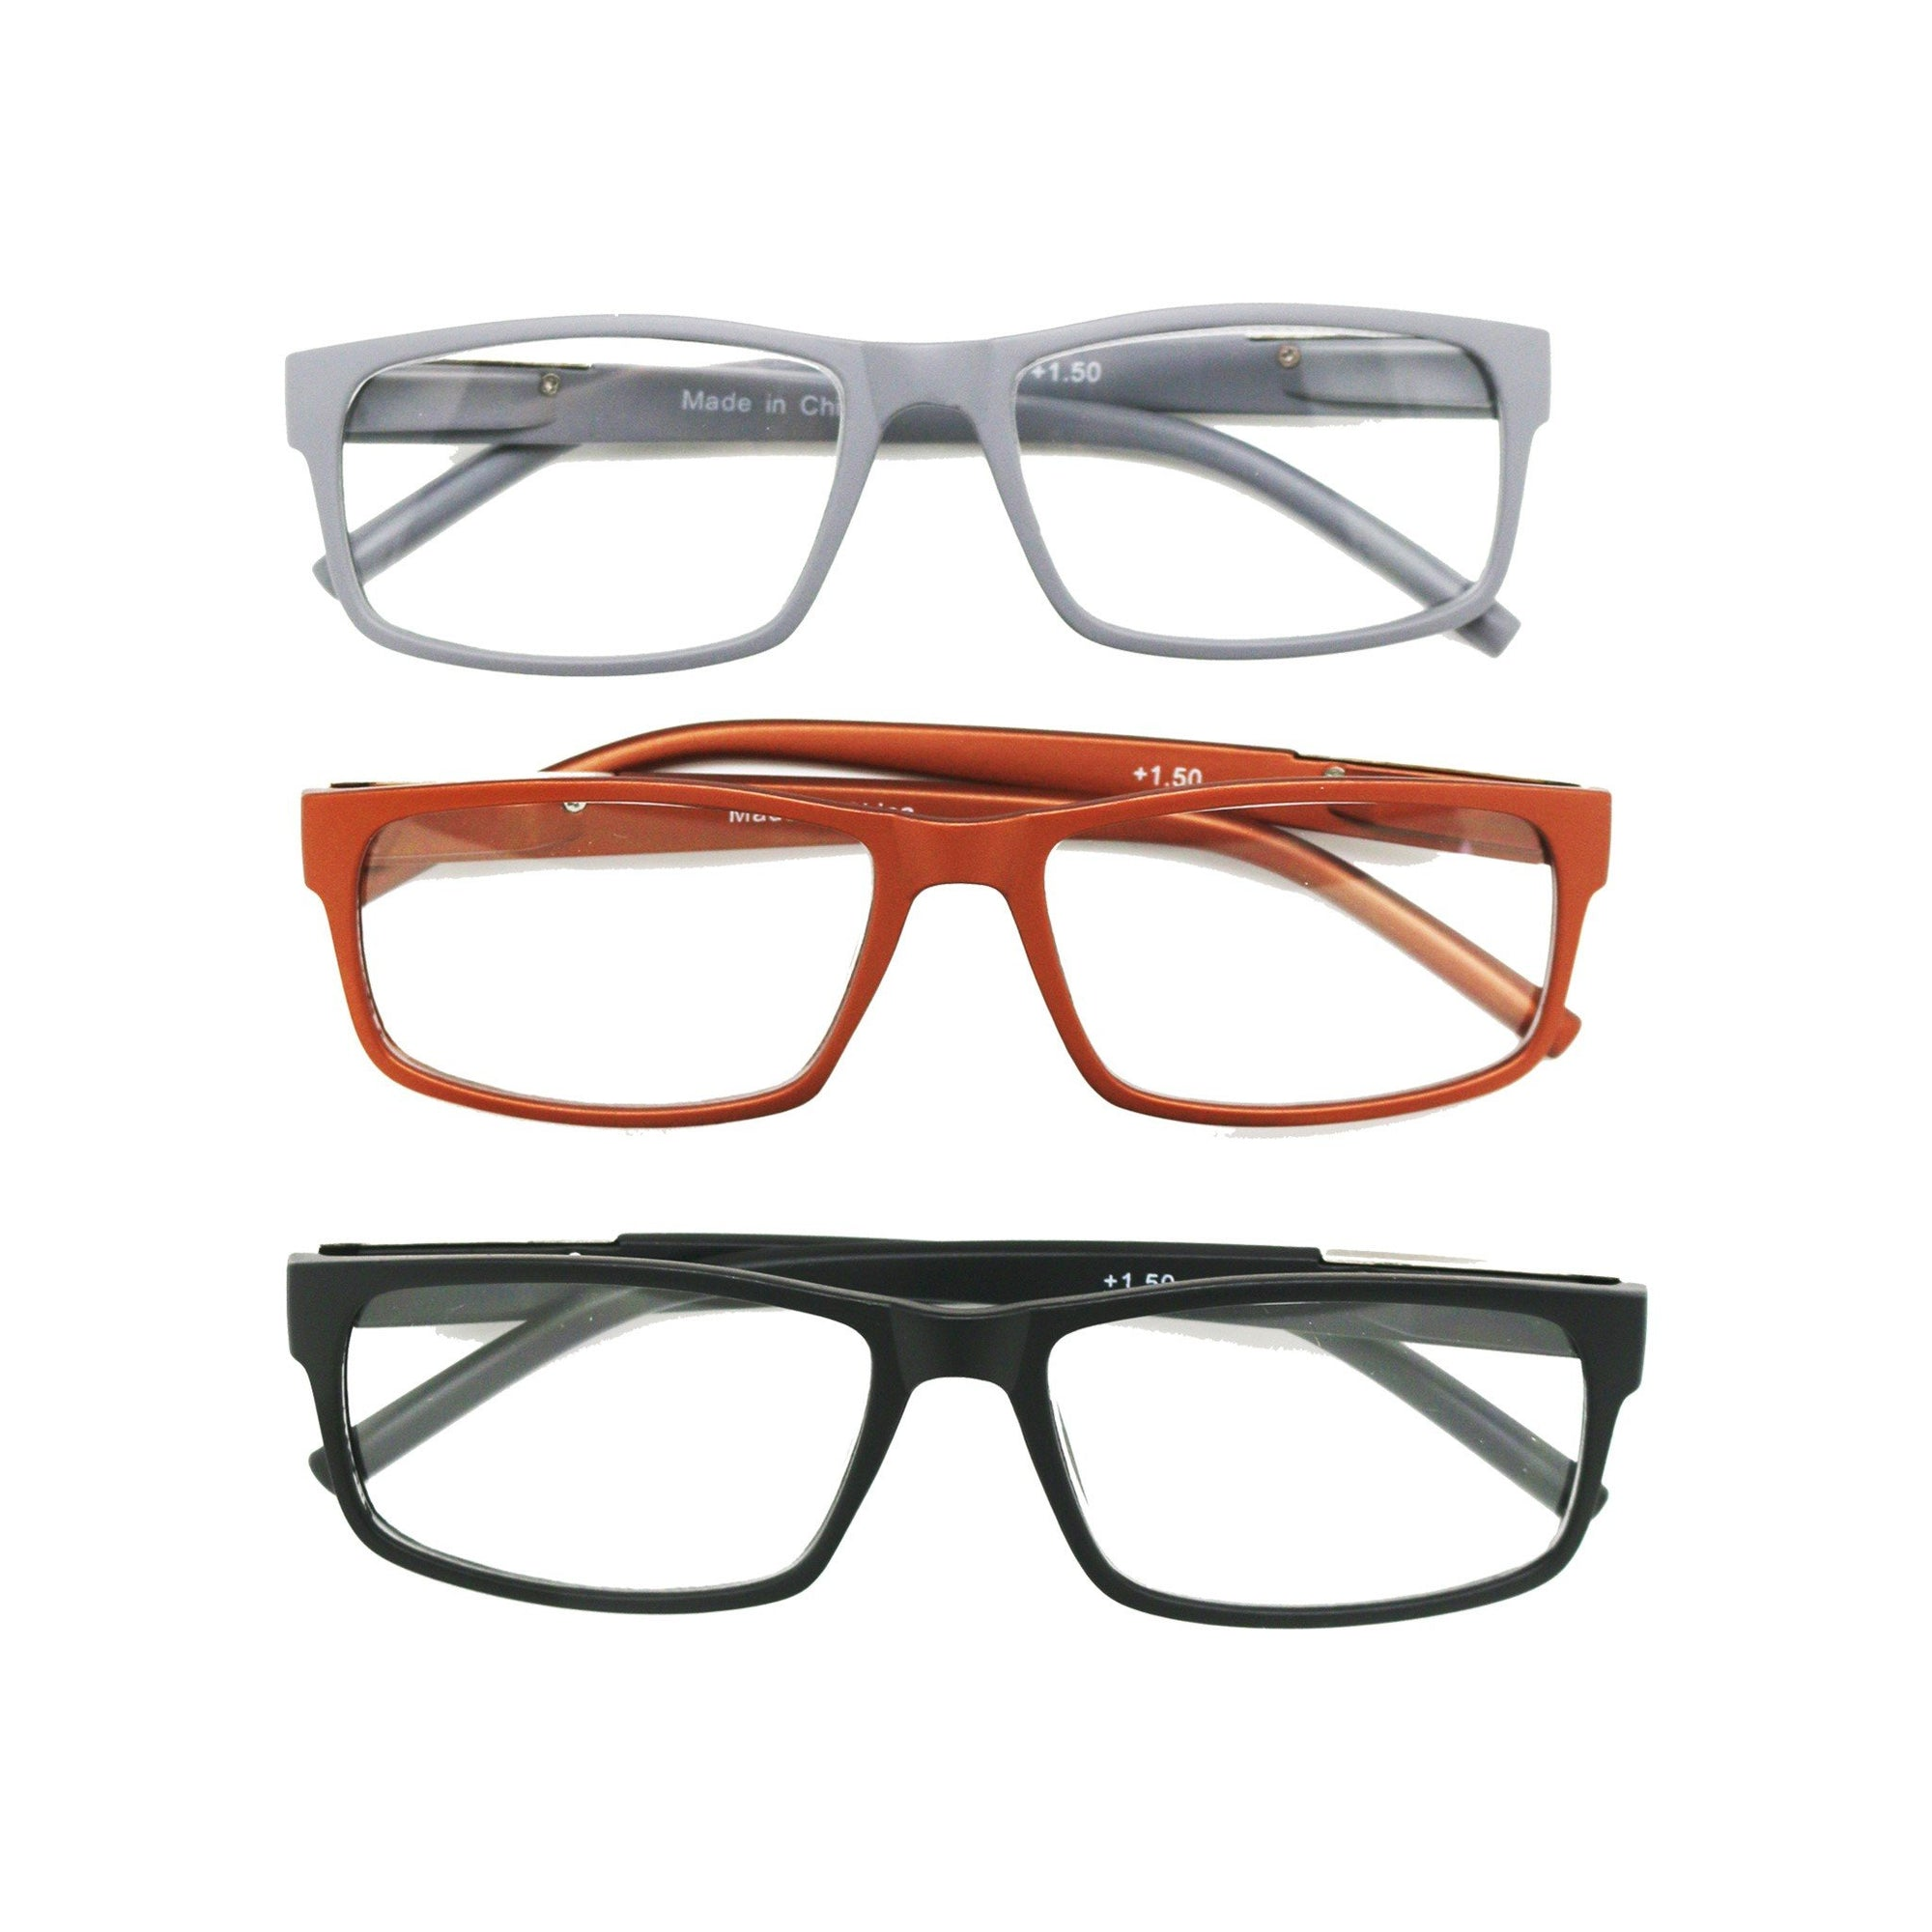 Casa Mens Reading Glasses +2.5 Magnification 3pk